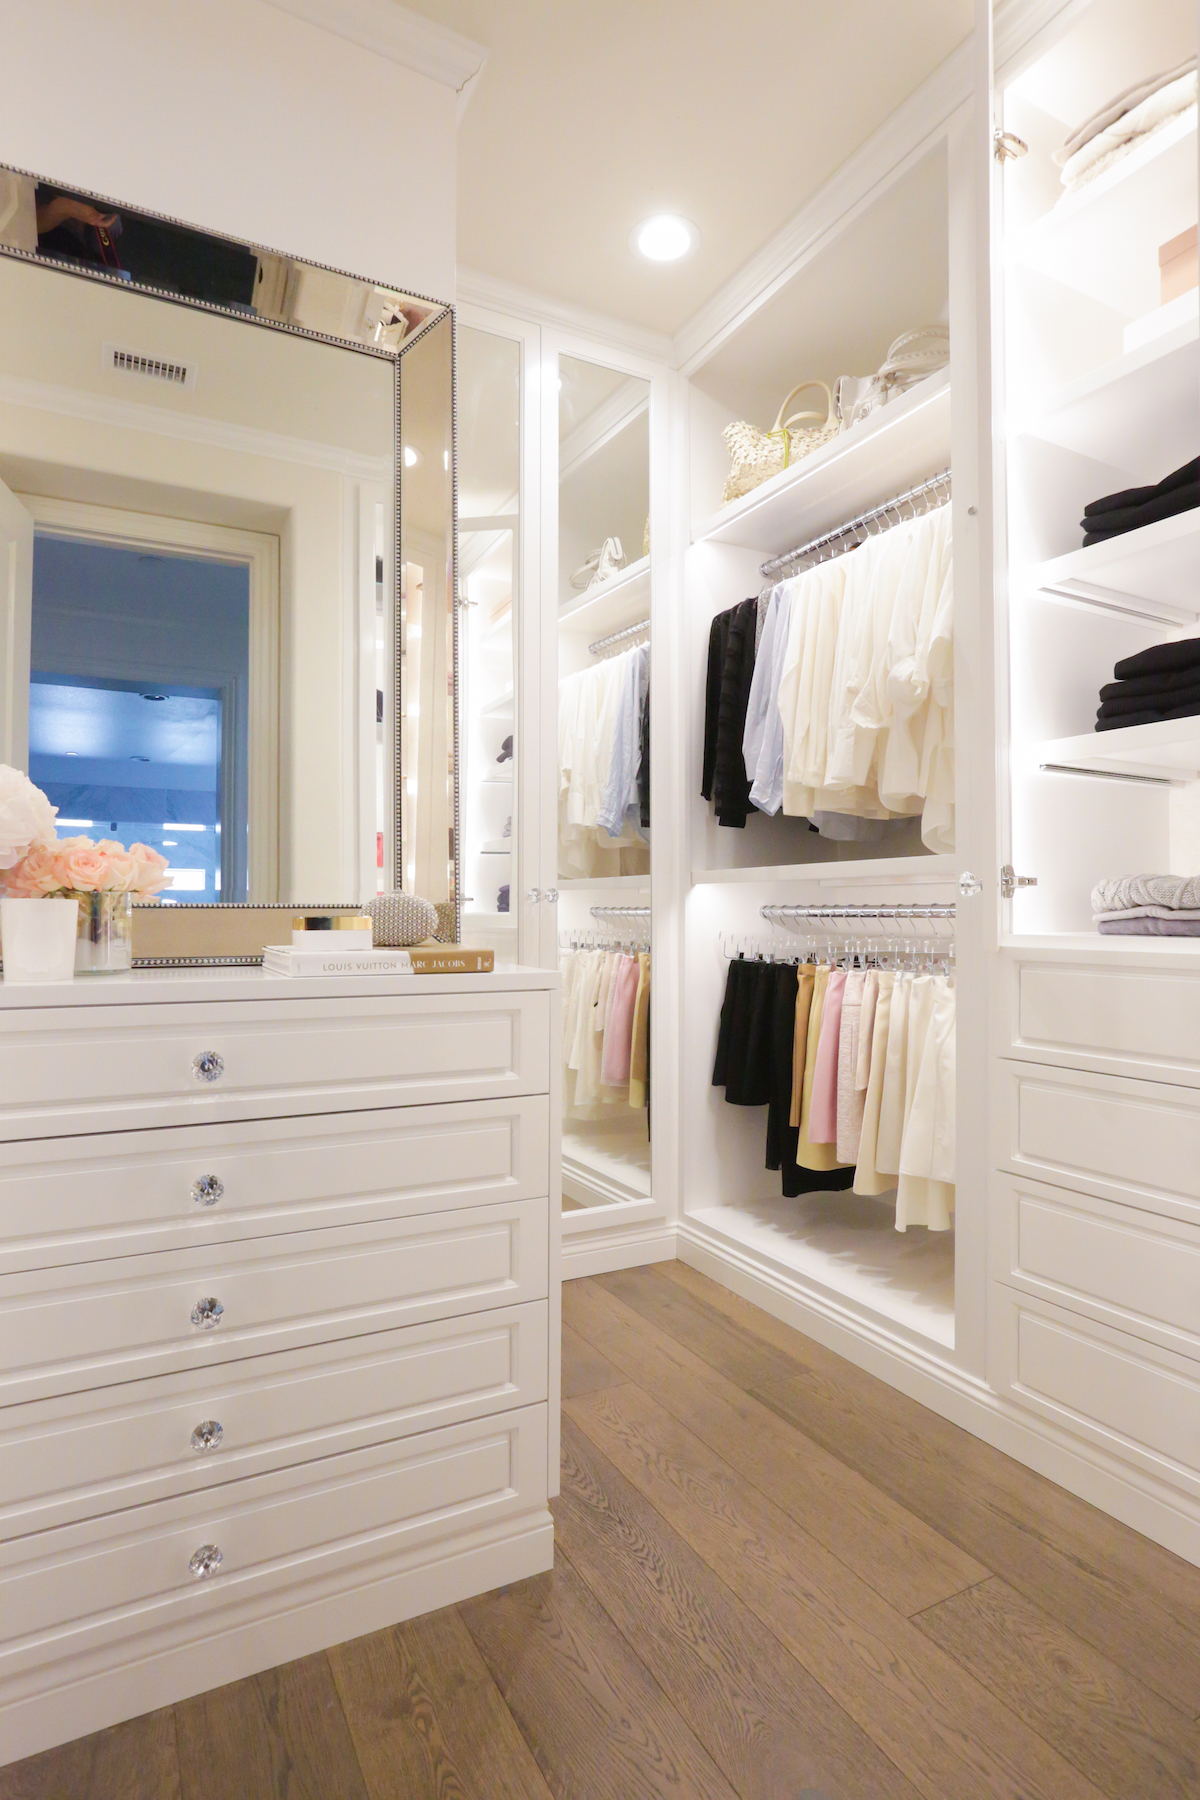 Merveilleux ... An Organized Master Closet For Her Clientu0027s Everyday Clothing. Drawers,  Shelves, And Racks Work In Conjunction With A Mirror Topped Bureau.